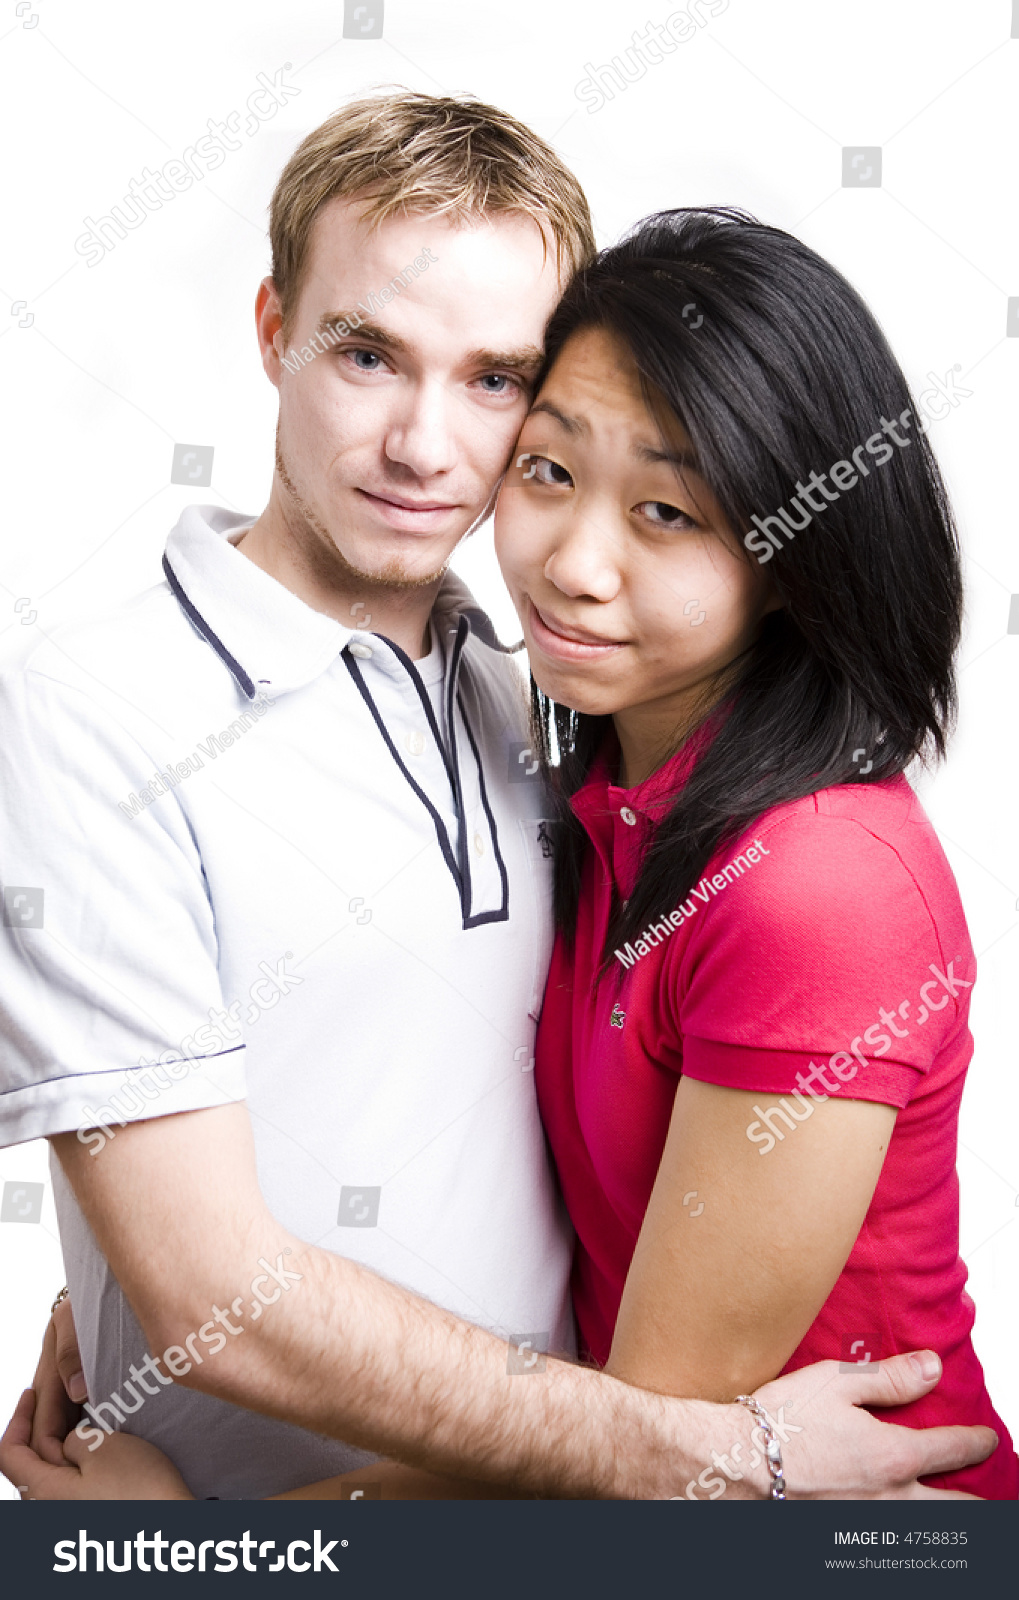 Interacial Classy young interacial couple picture series stock photo 4758835